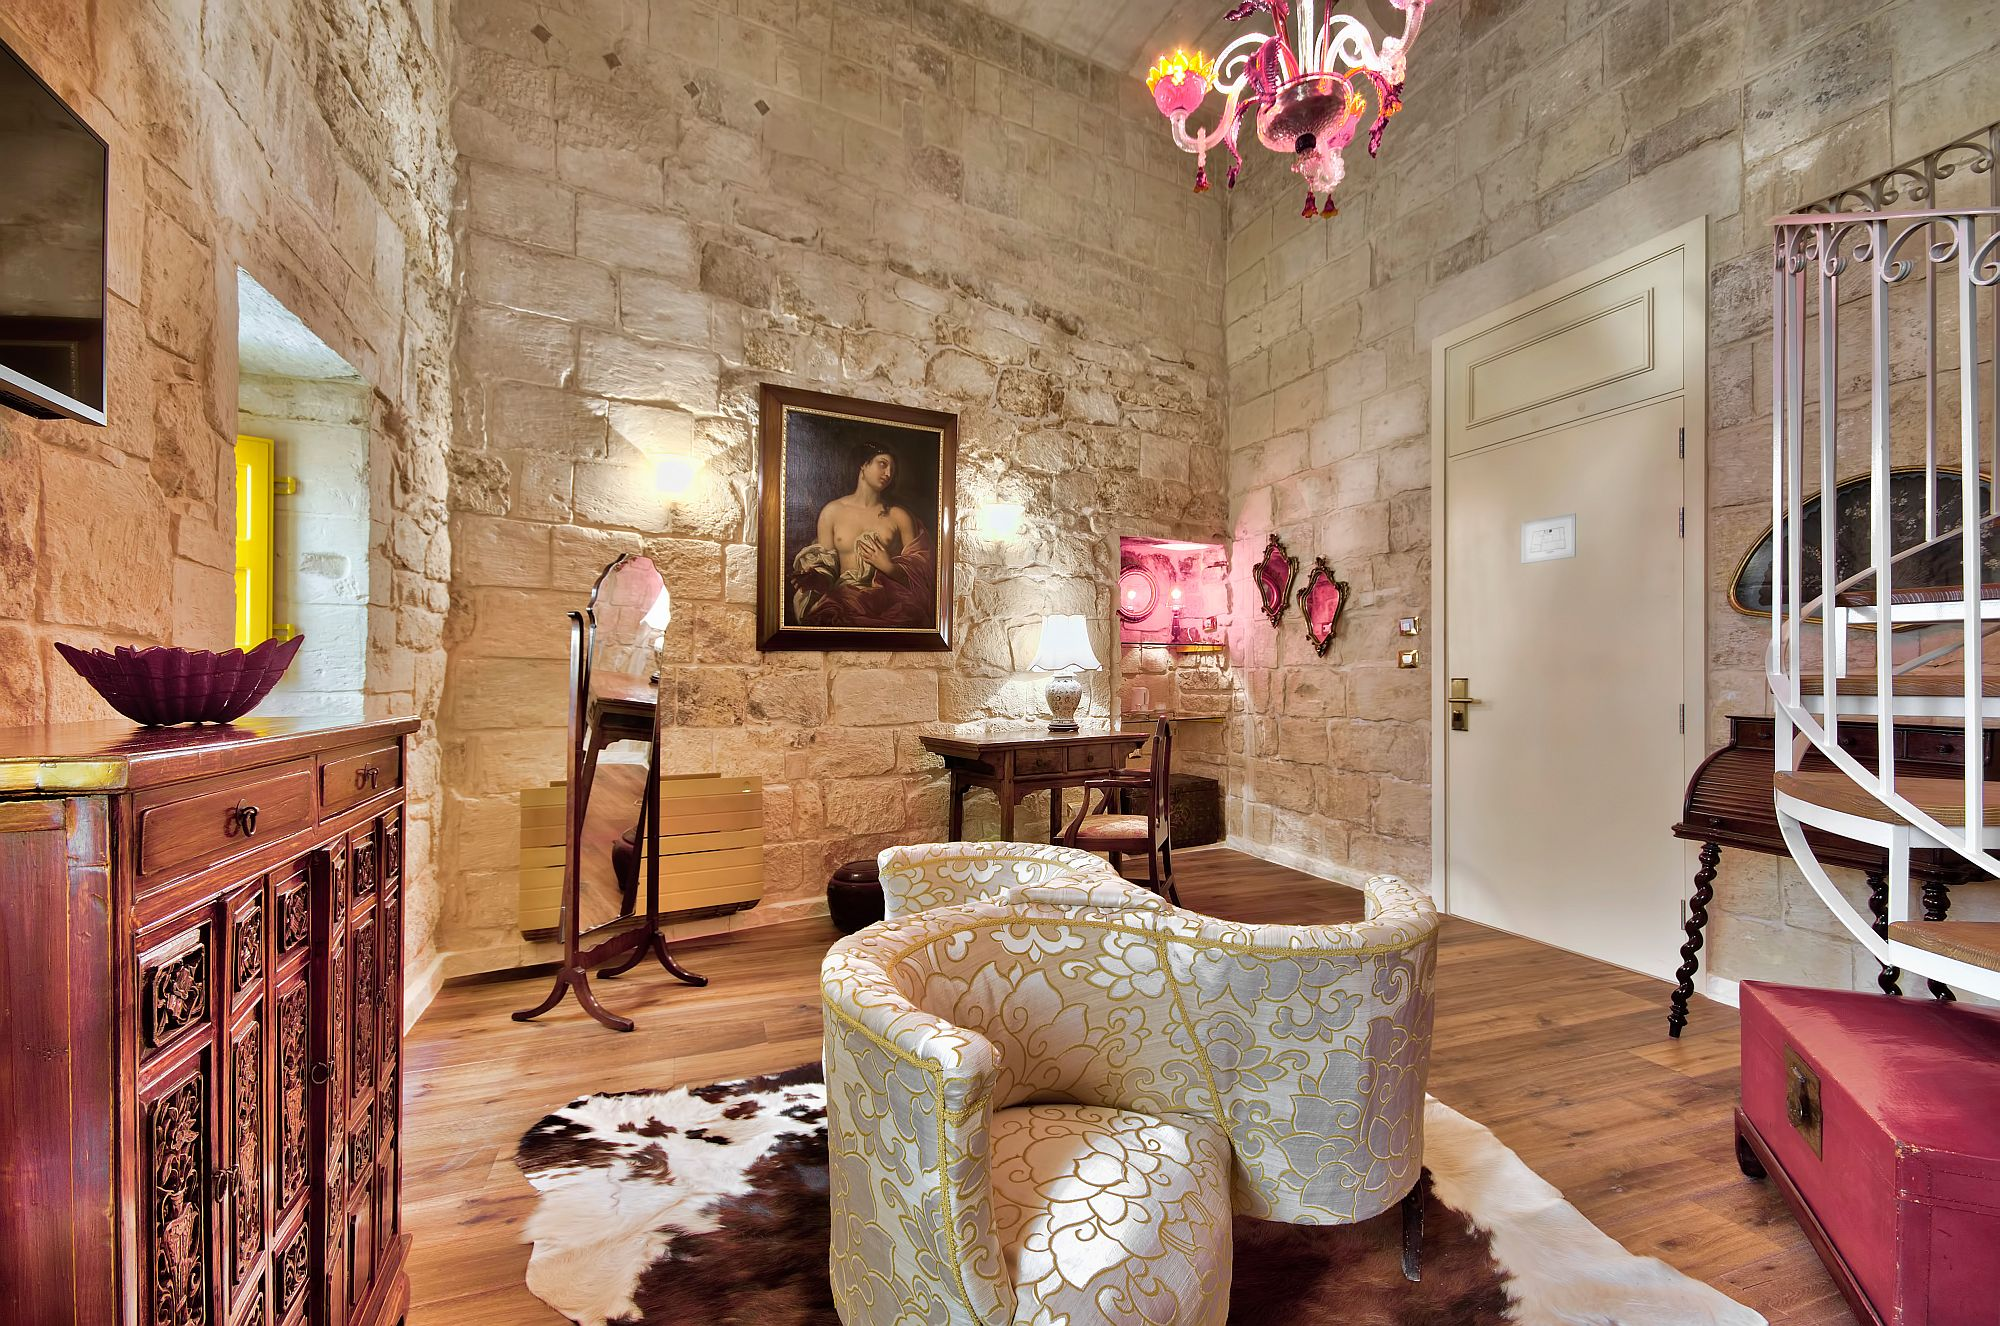 Exquisite collection of rare decor and art pieces inside Suite One of Locanda La Gelsomina